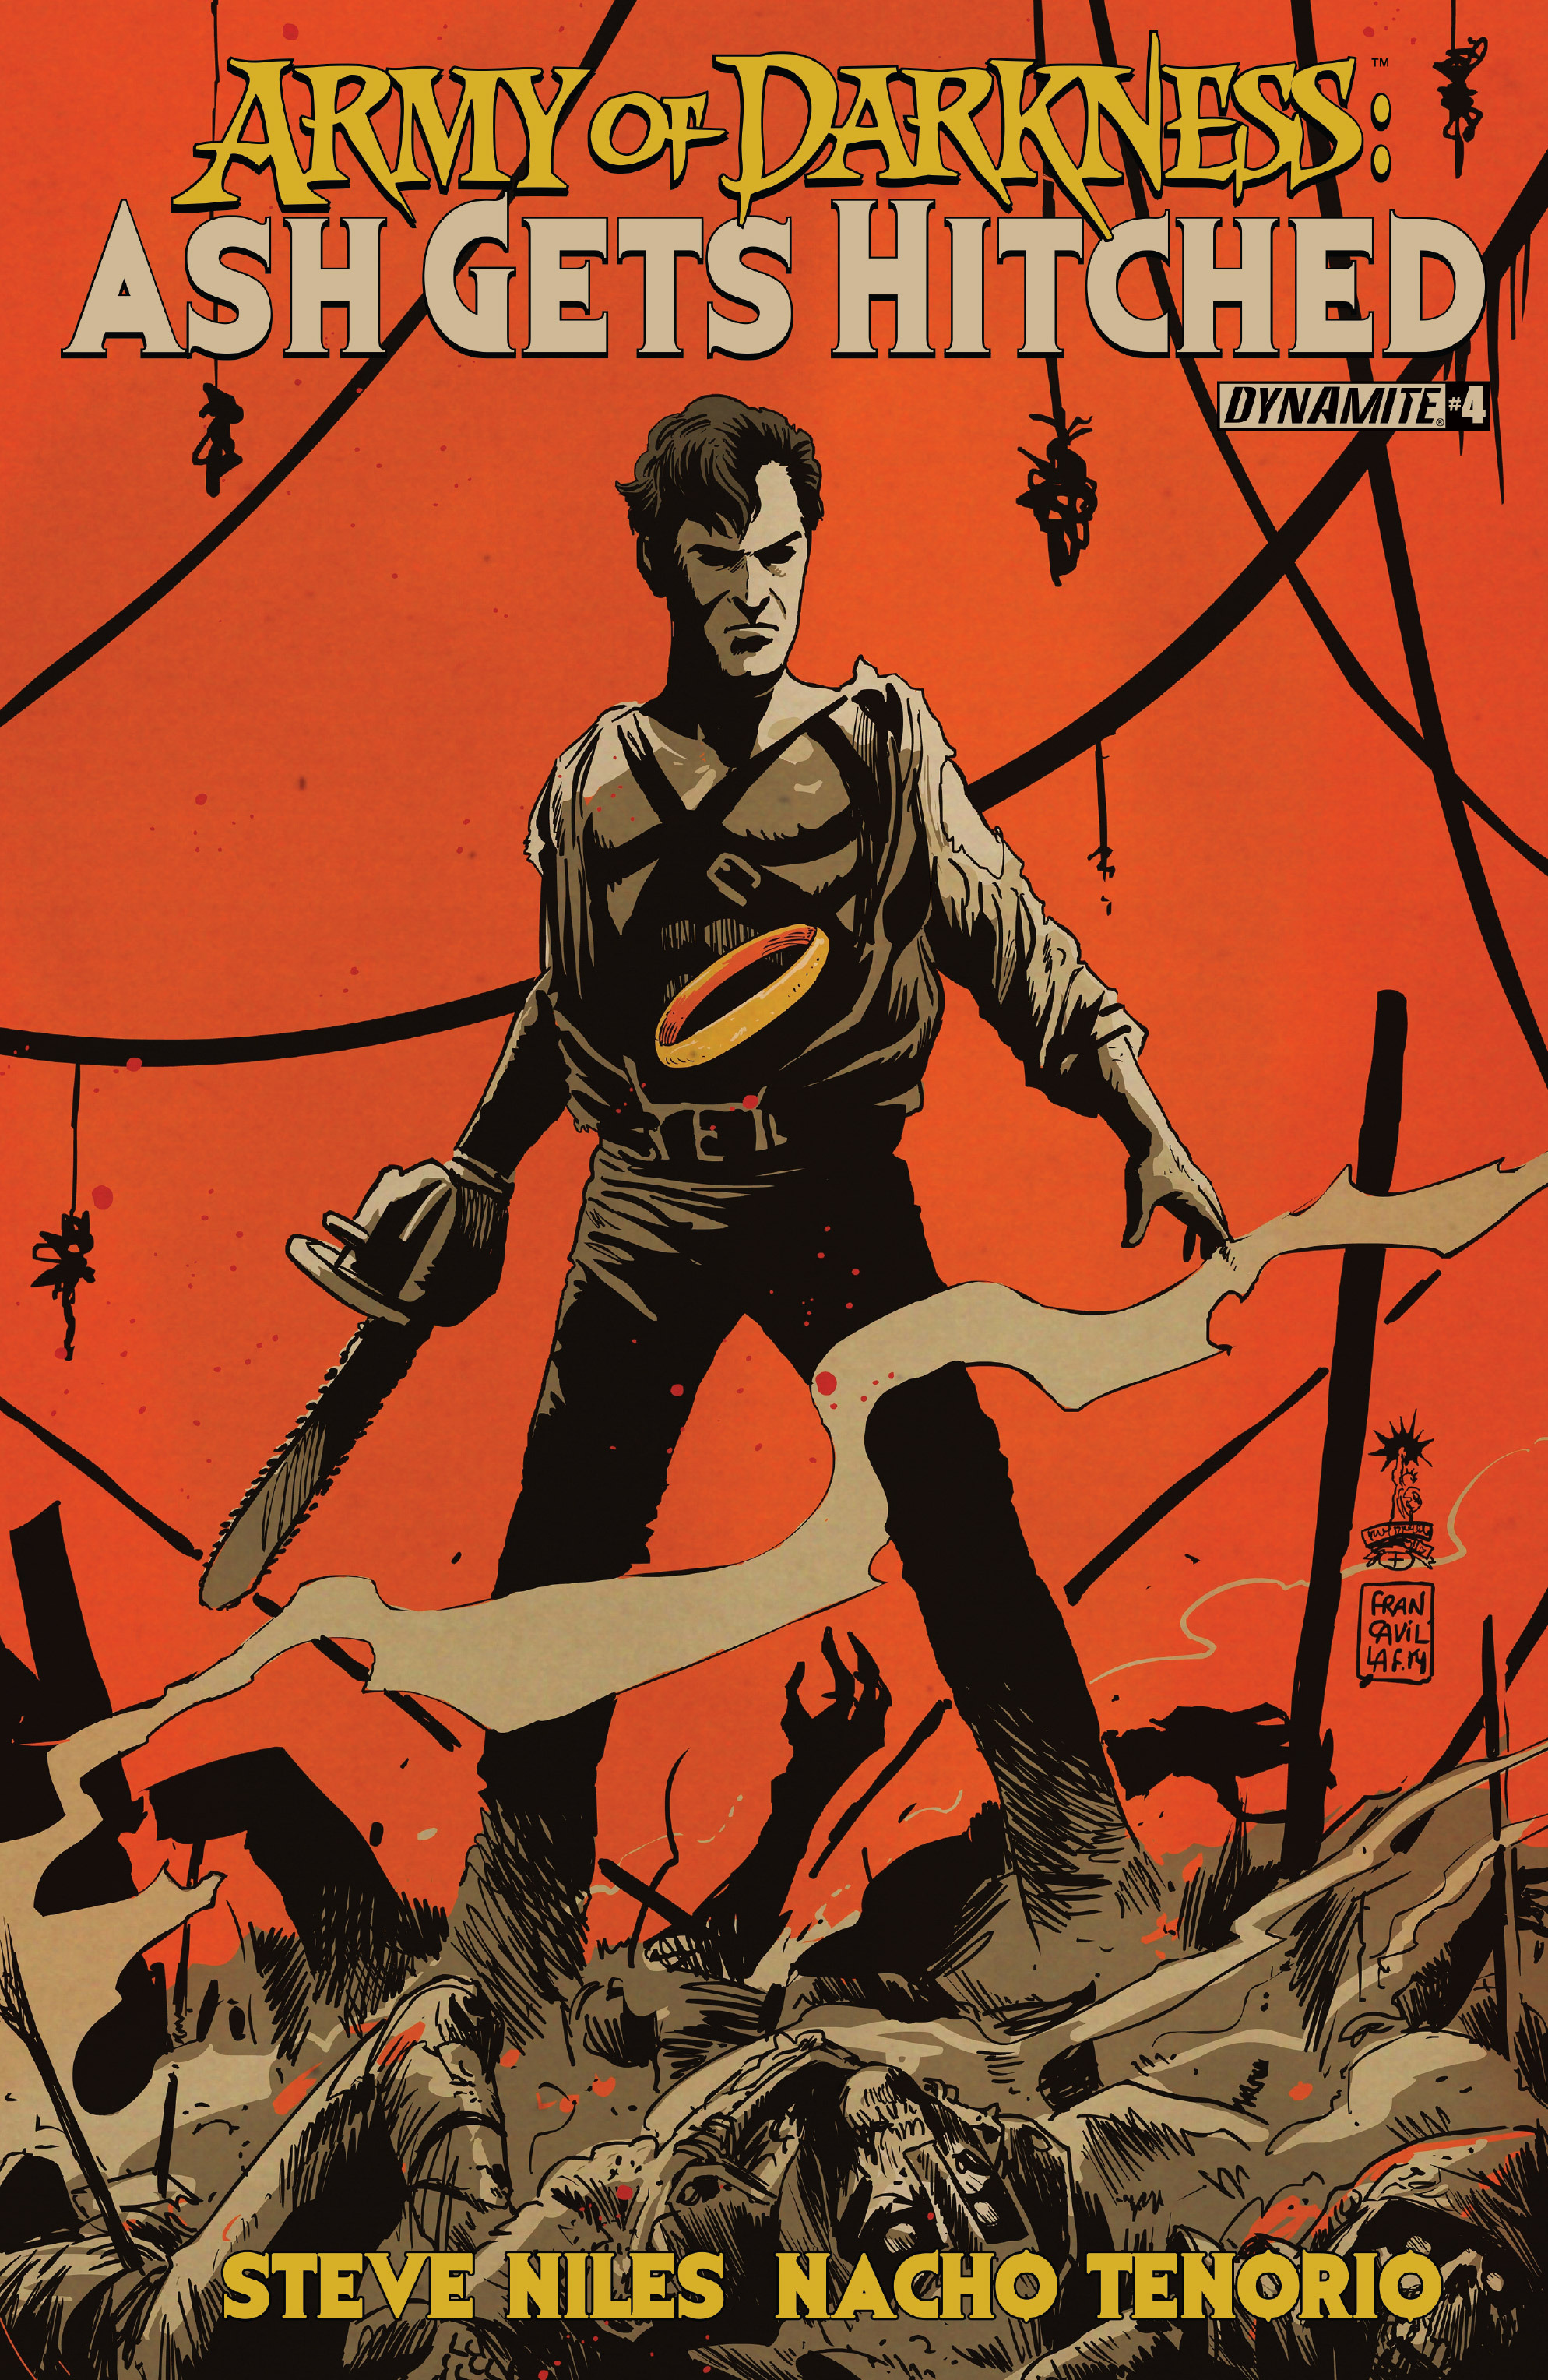 Read online Army of Darkness: Ash Gets Hitched comic -  Issue #4 - 2